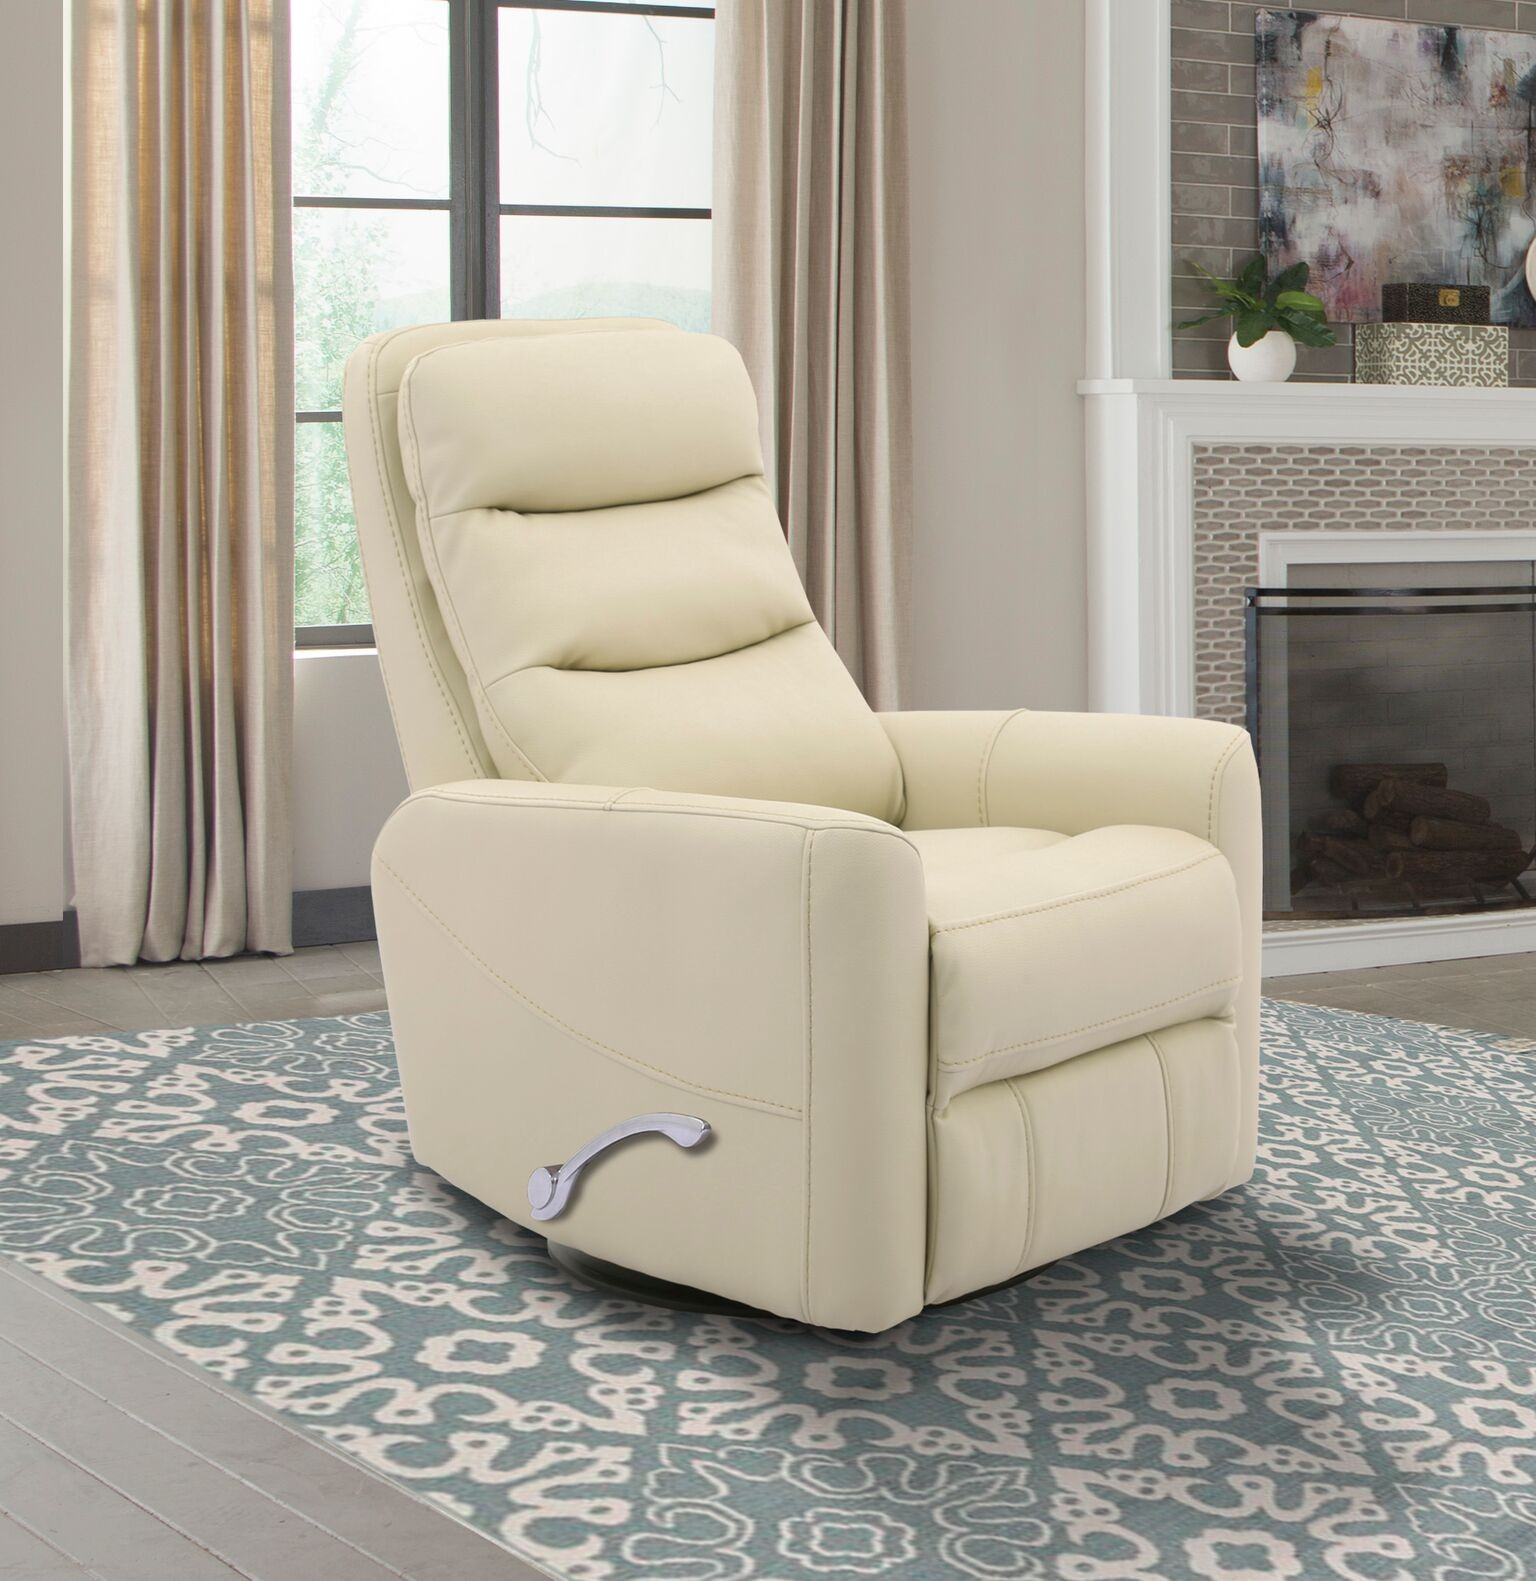 Hercules -Oyster- Swivel Glider Recliner With Articulating Headrest with regard to Hercules Grey Swivel Glider Recliners